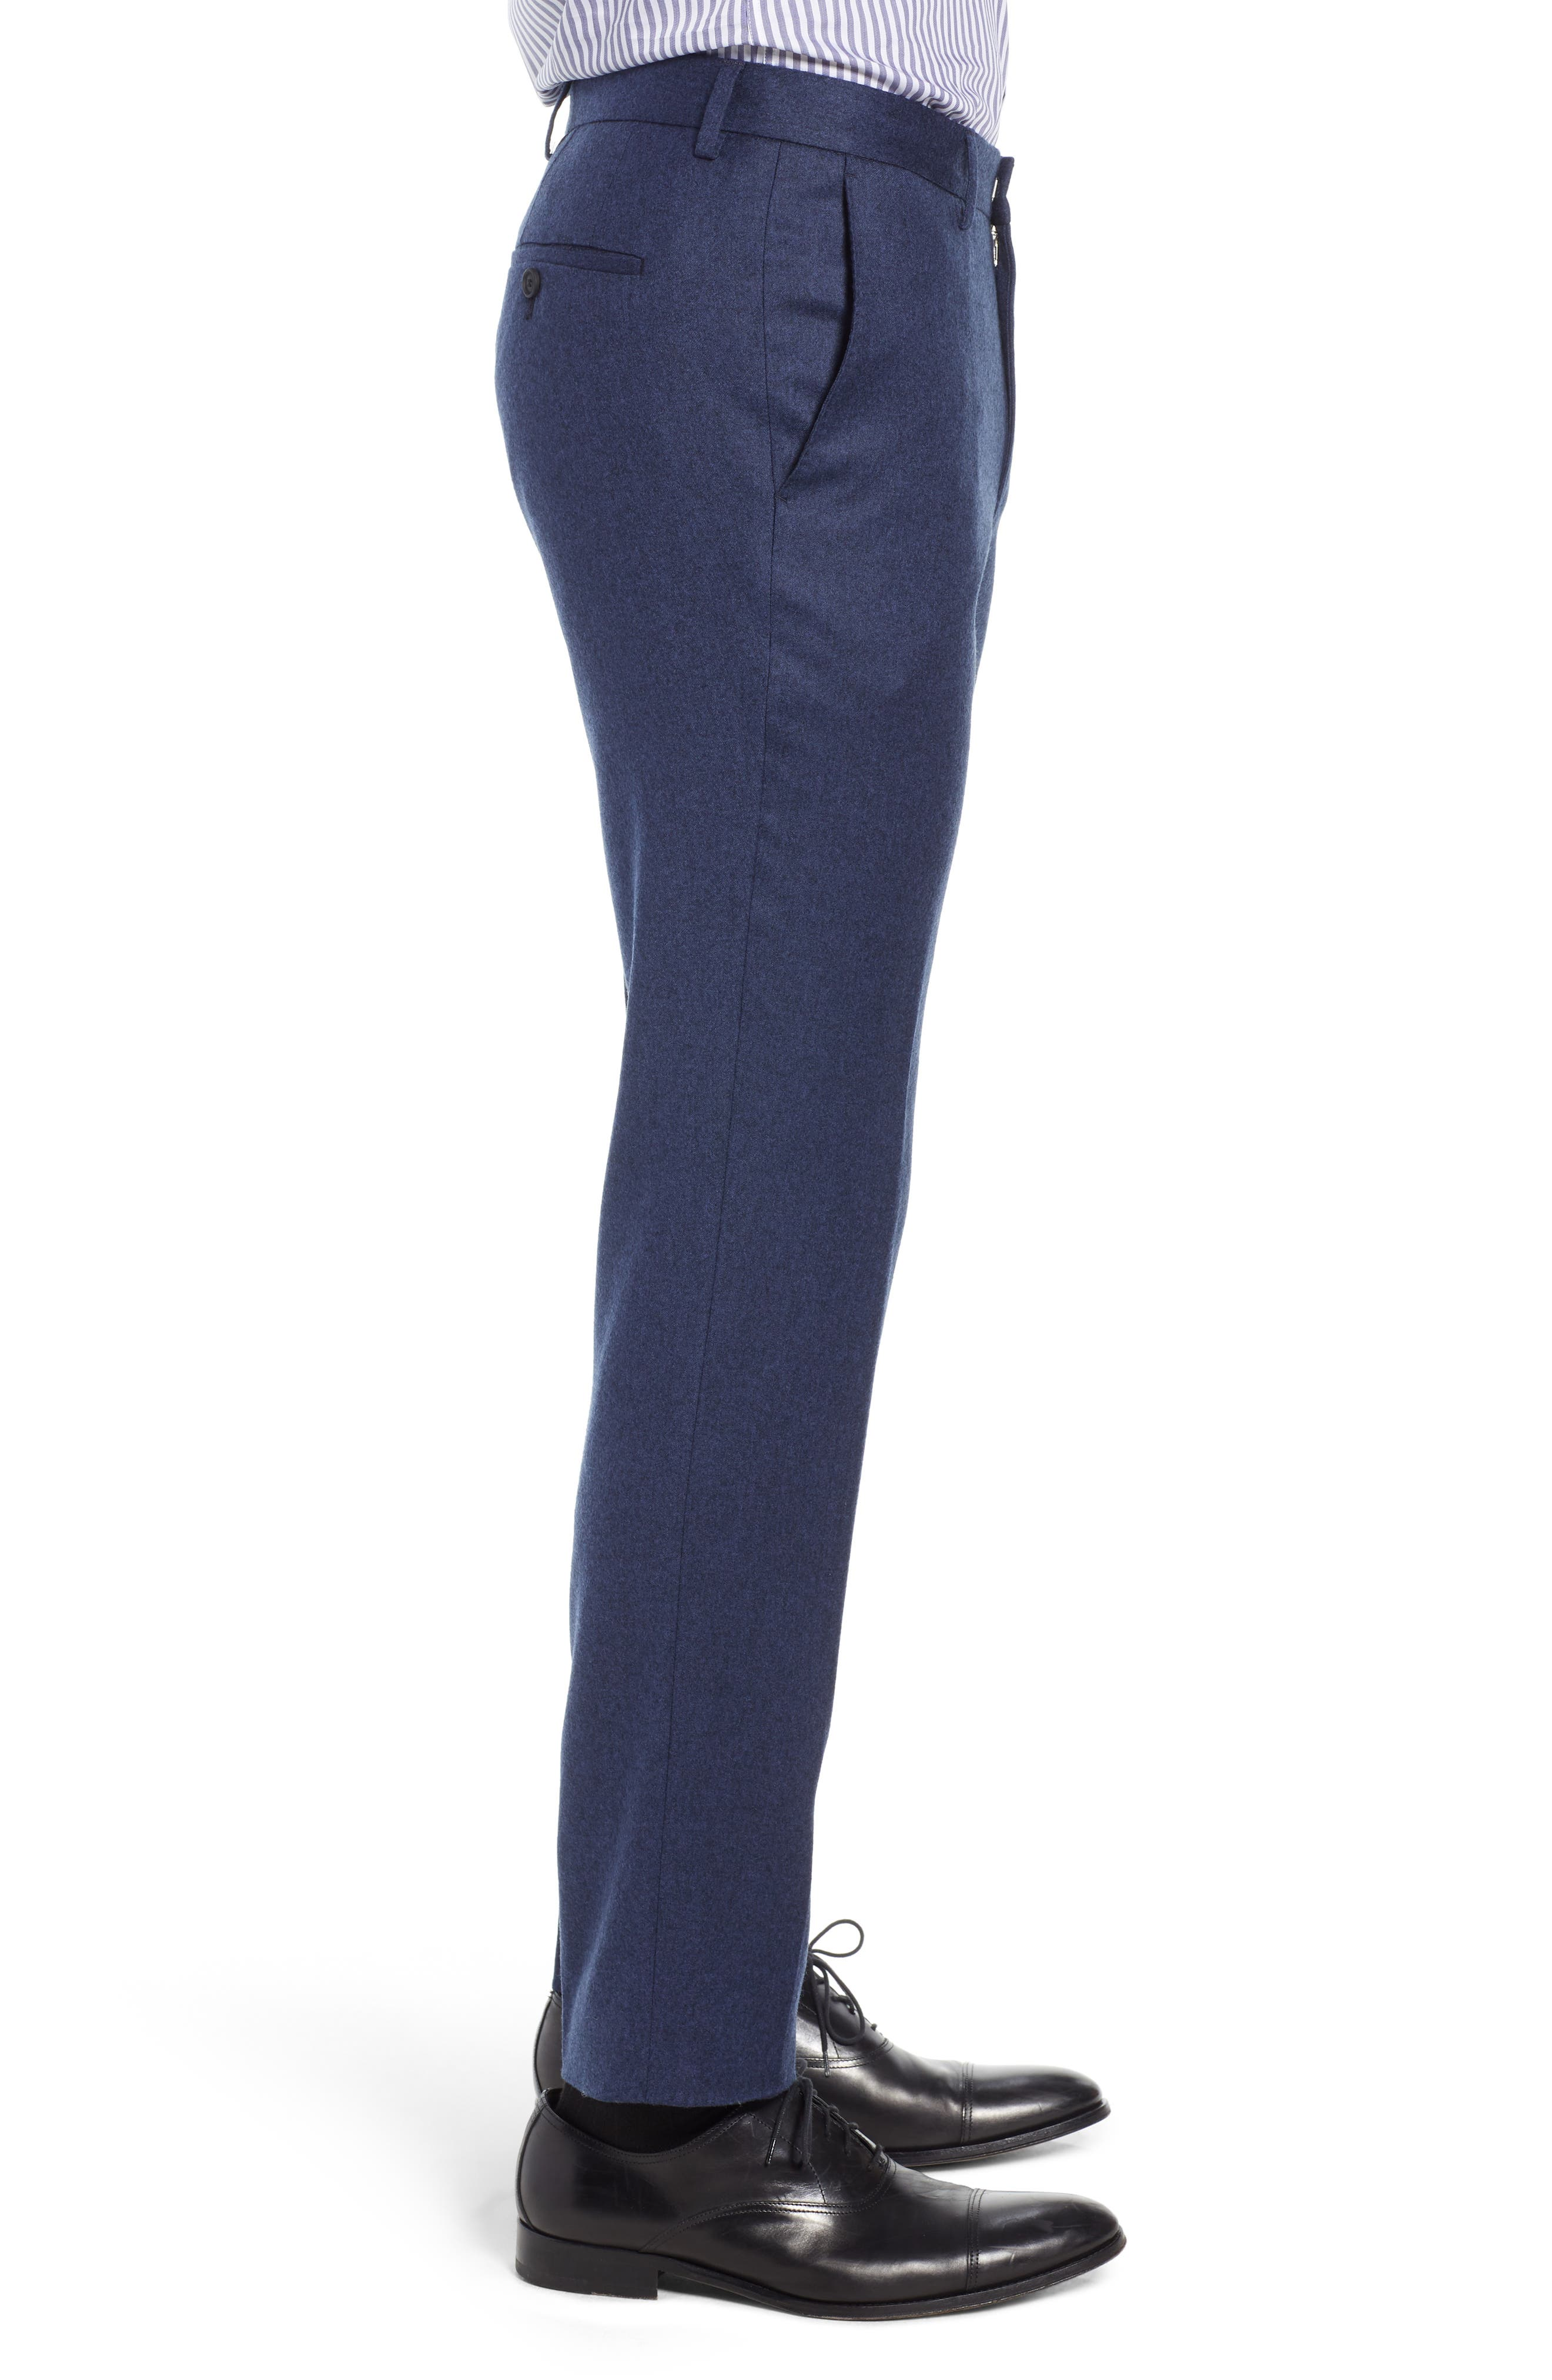 Gains Flat Front Solid Wool Trousers,                             Alternate thumbnail 3, color,                             DARK BLUE